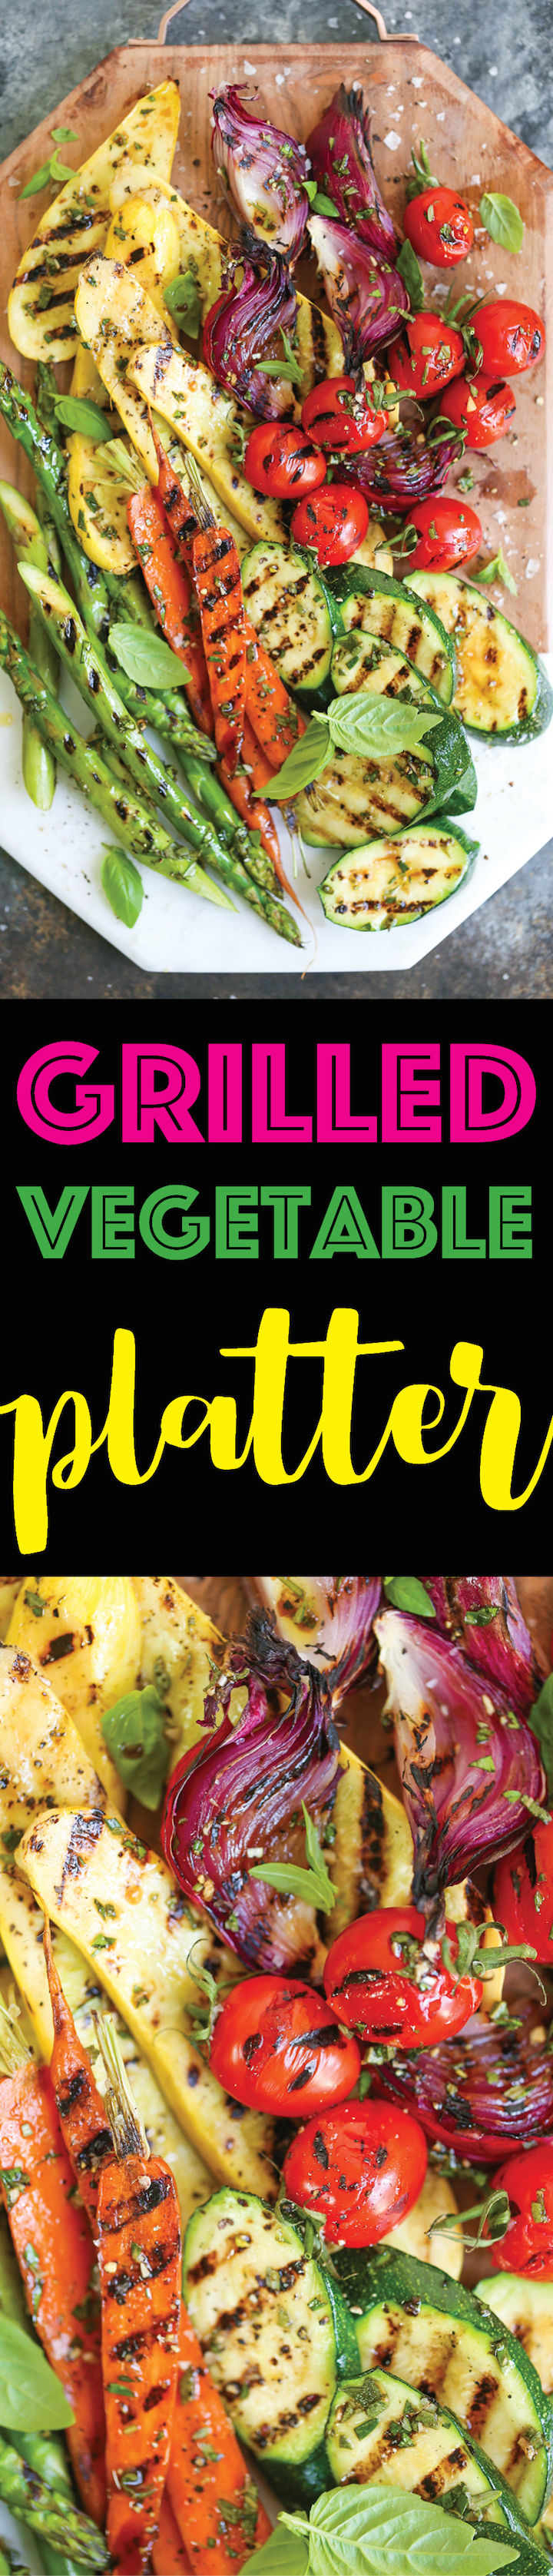 Grilled Vegetable Platter - How to assemble the most AWESOME vegetable platter! No more sad-looking veggies! This is so easy and perfect for entertaining!